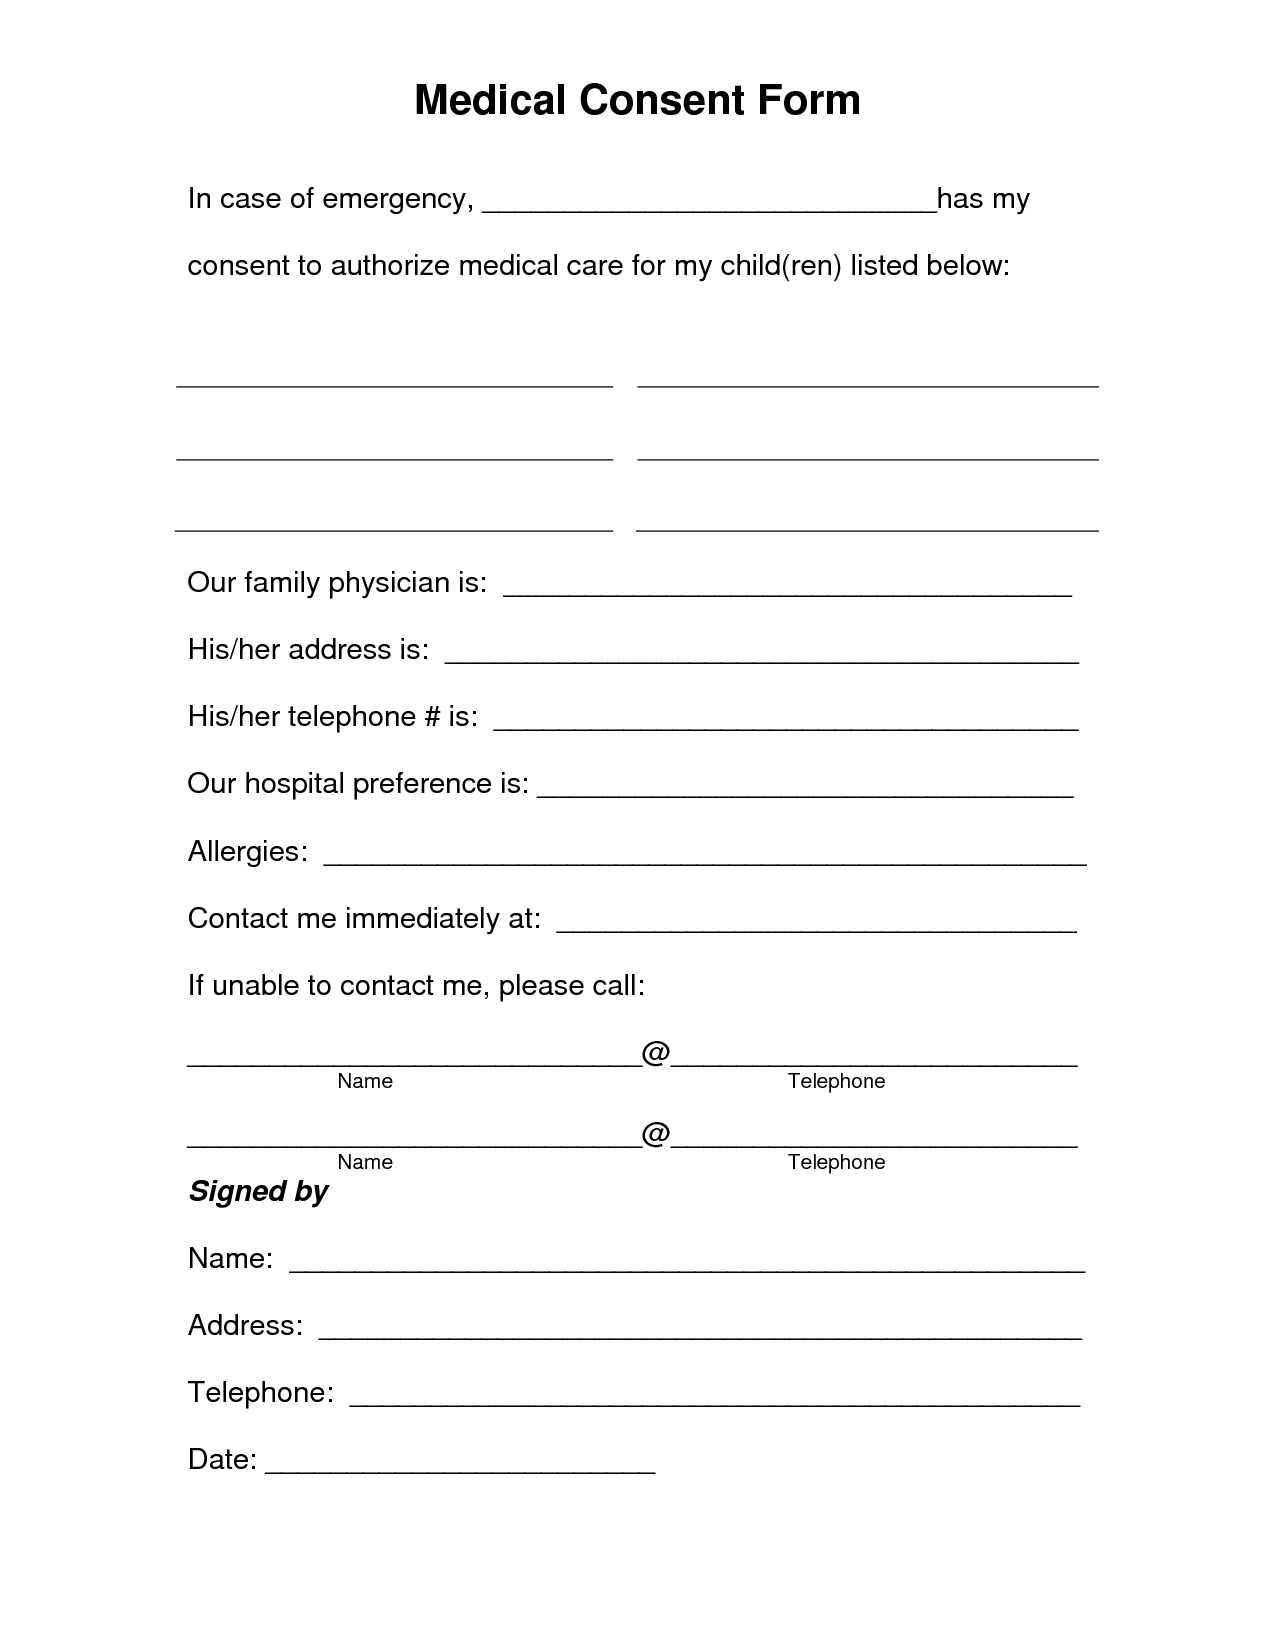 Free printable medical consent form free medical consent form free printable medical consent form free medical consent form altavistaventures